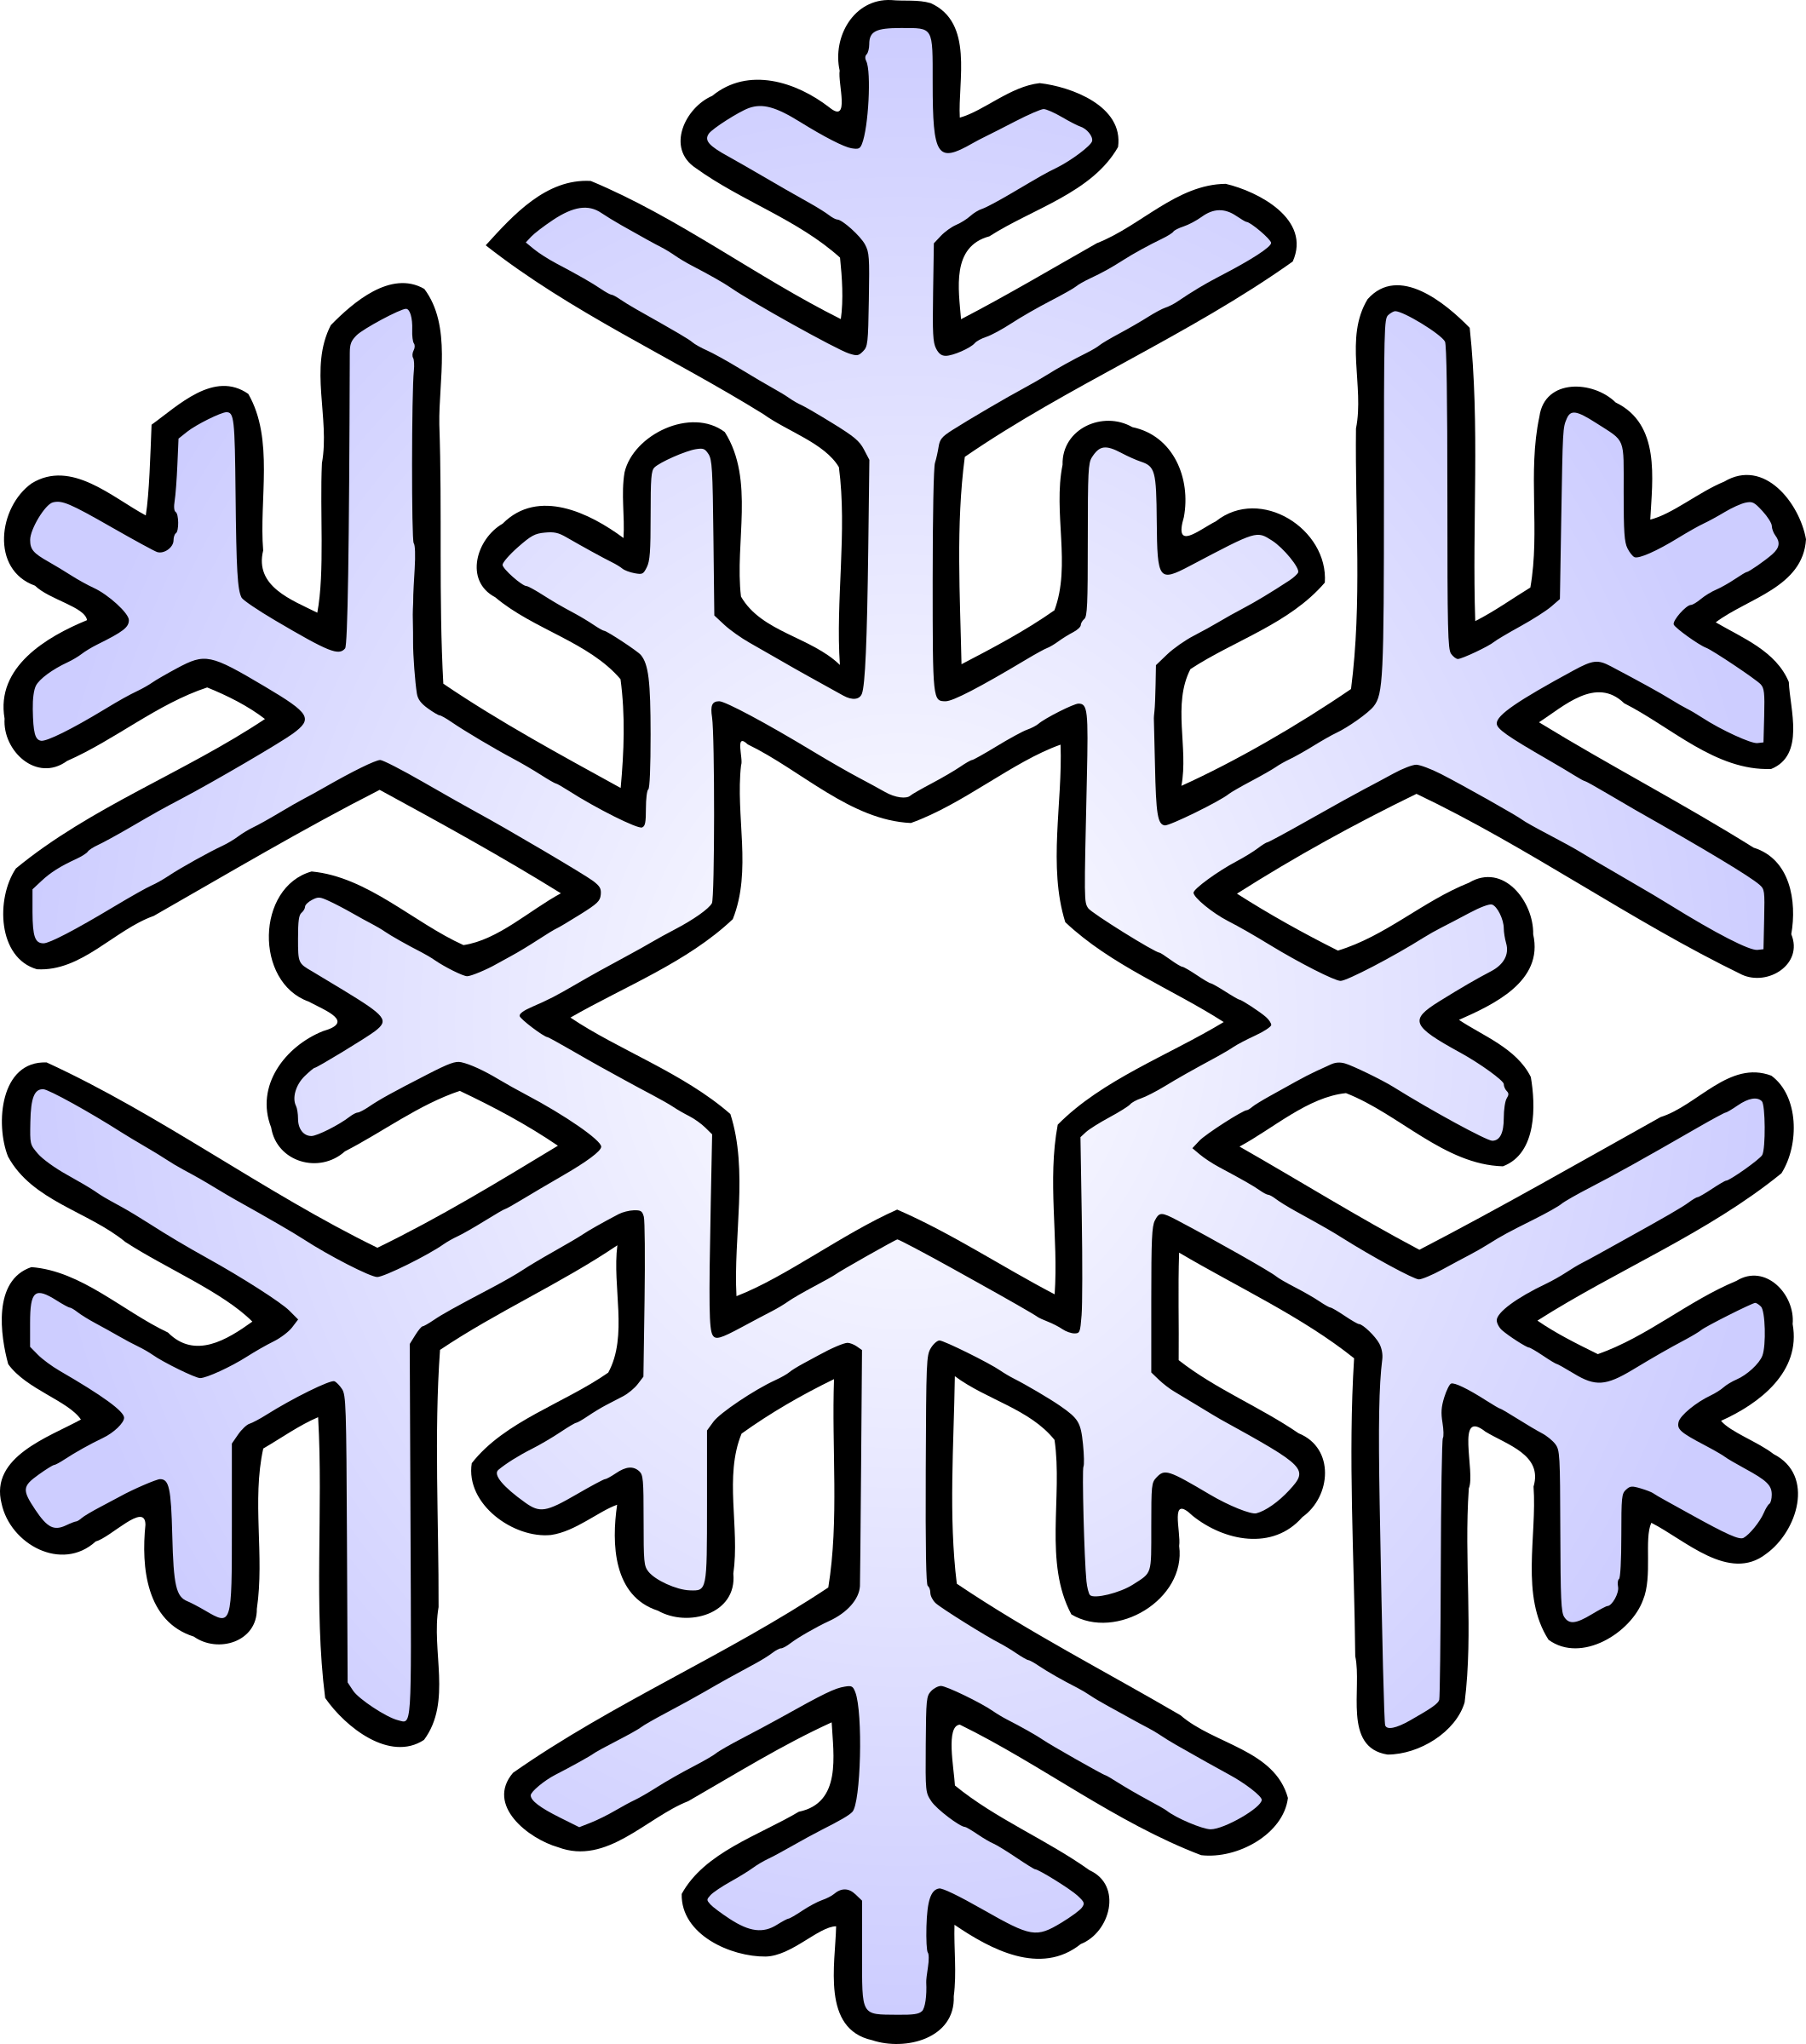 Snowflake clipart drawing. Free at getdrawings com